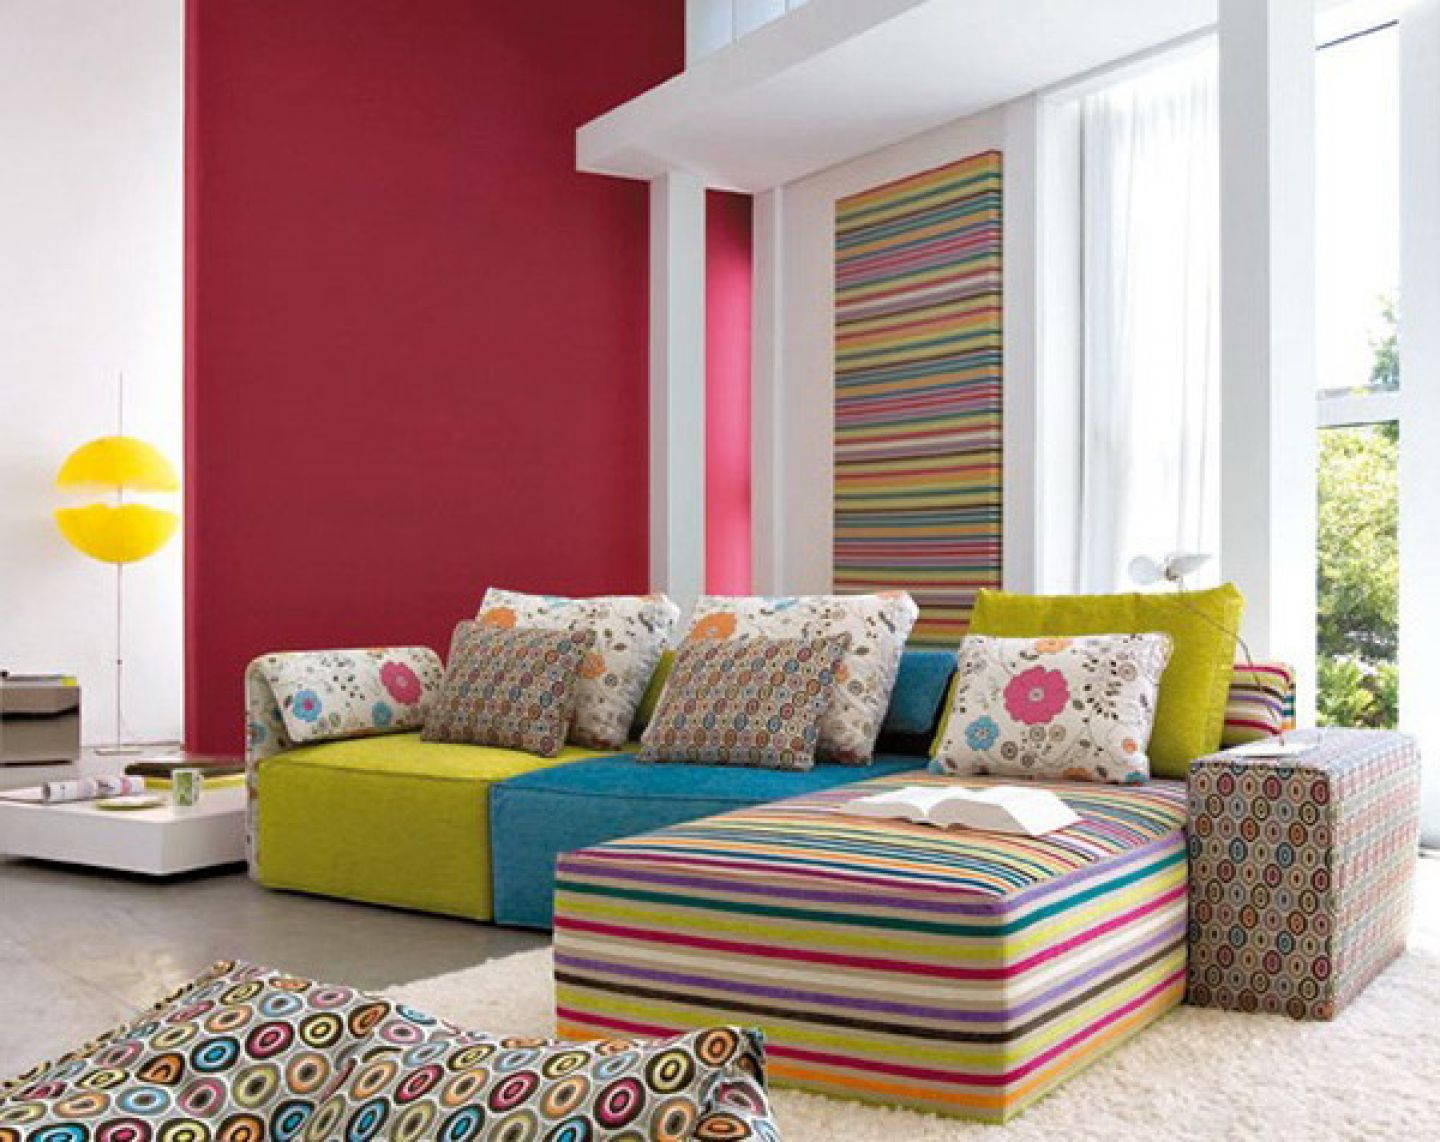 Flowery Cushions on Colorful Sectional Sofa as Appealing Living Room Color Schemes on White Carpet Flooring